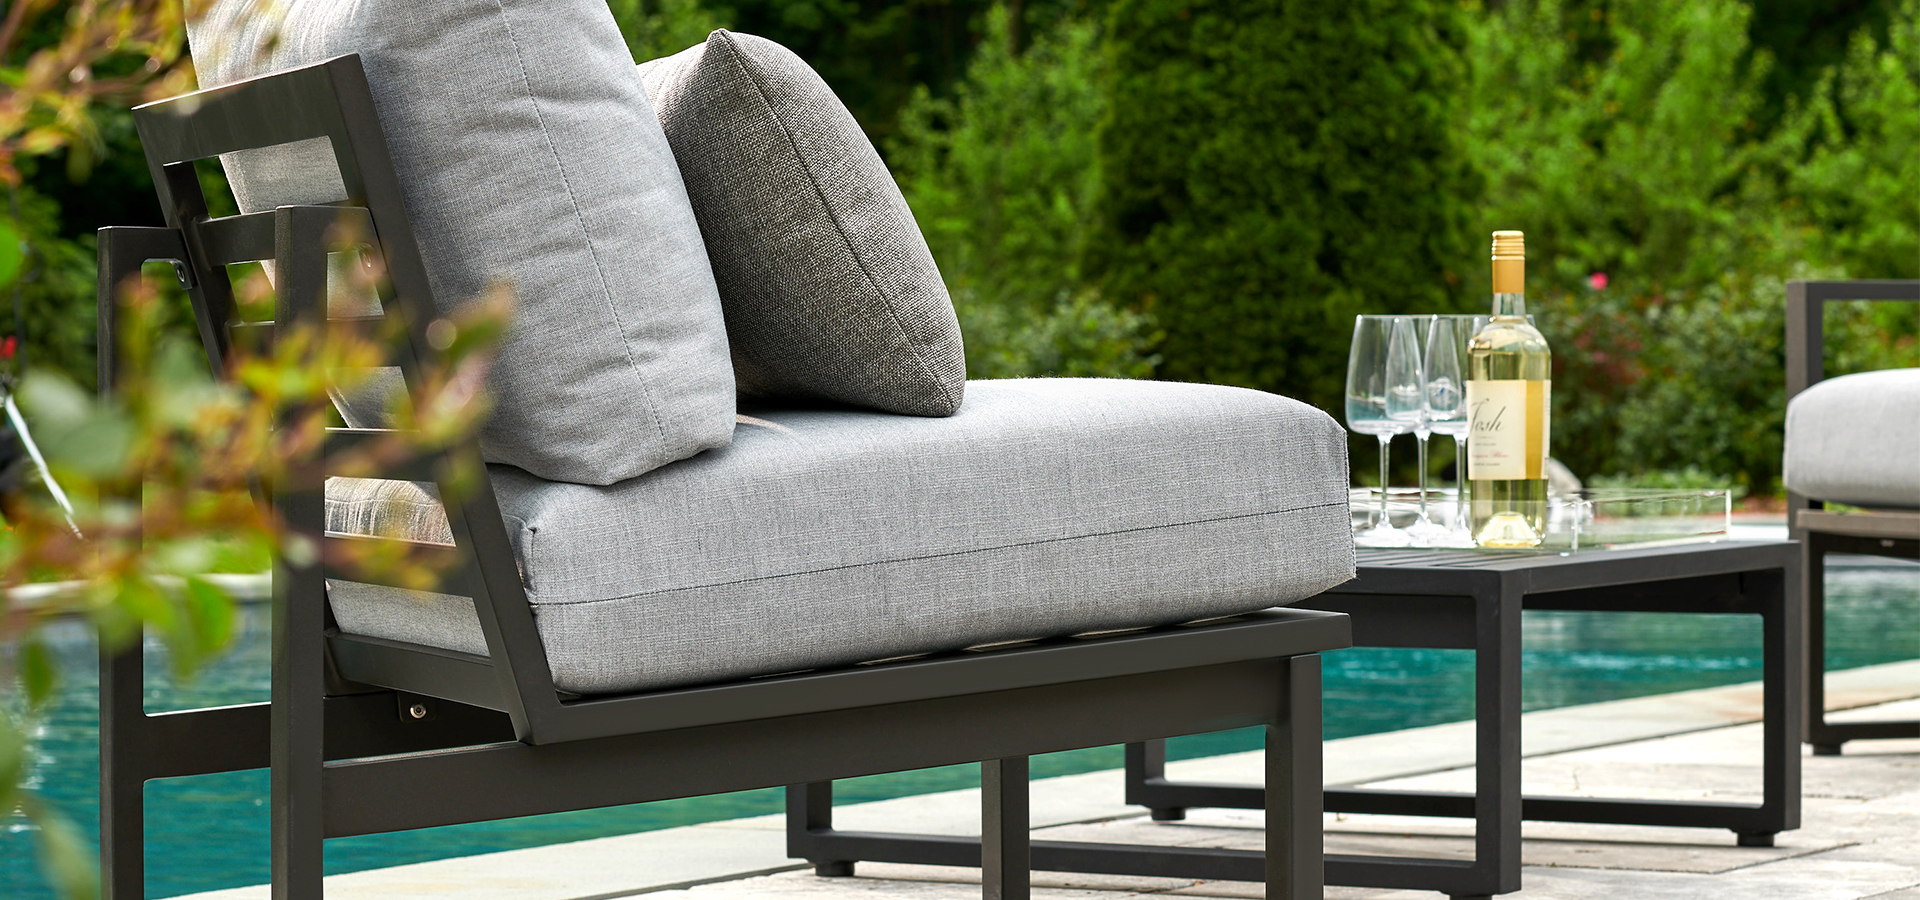 Walters Wicker Designer Indoor Outdoor Furniture - Garden Furniture Clearance Mercure Hotel